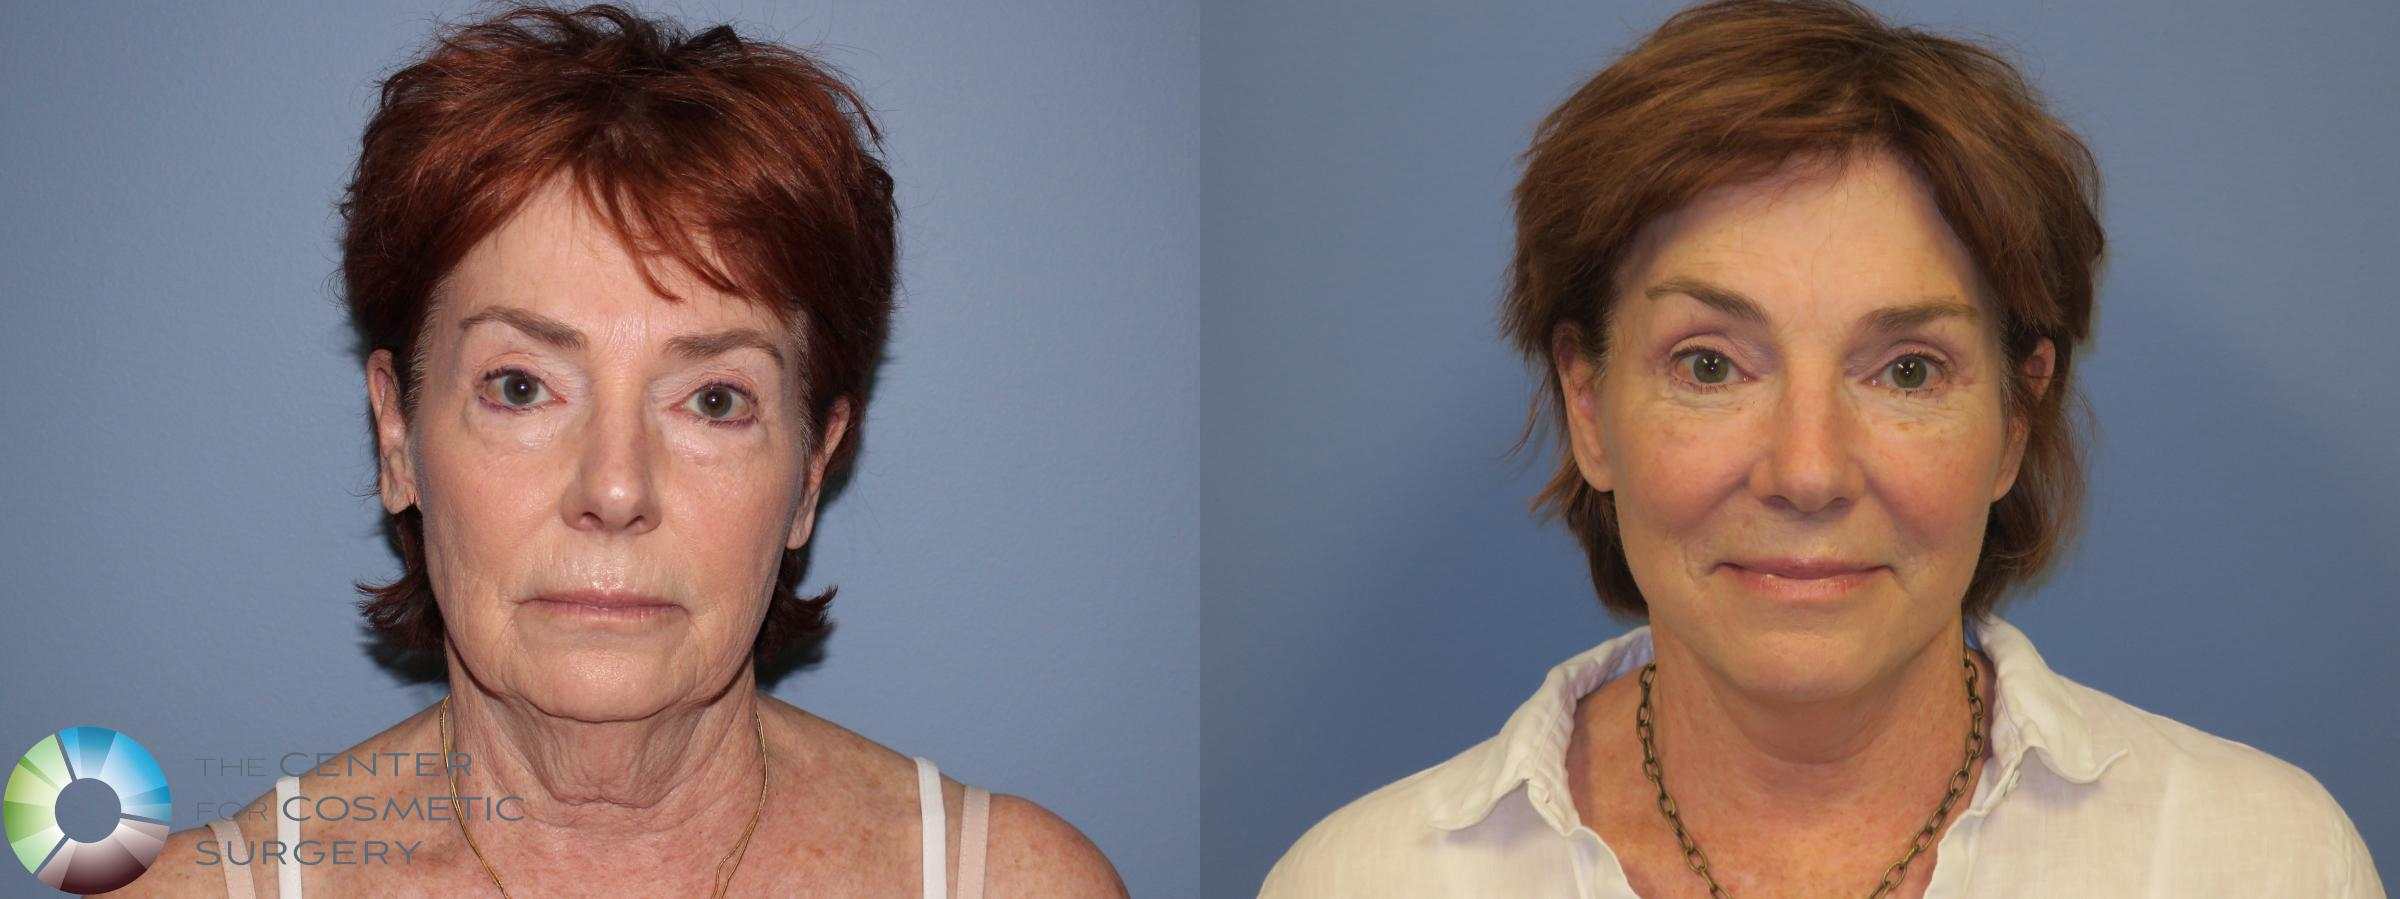 Mini Facelift Case 11449 Before & After Front | Denver & Golden, CO | The Center for Cosmetic Surgery